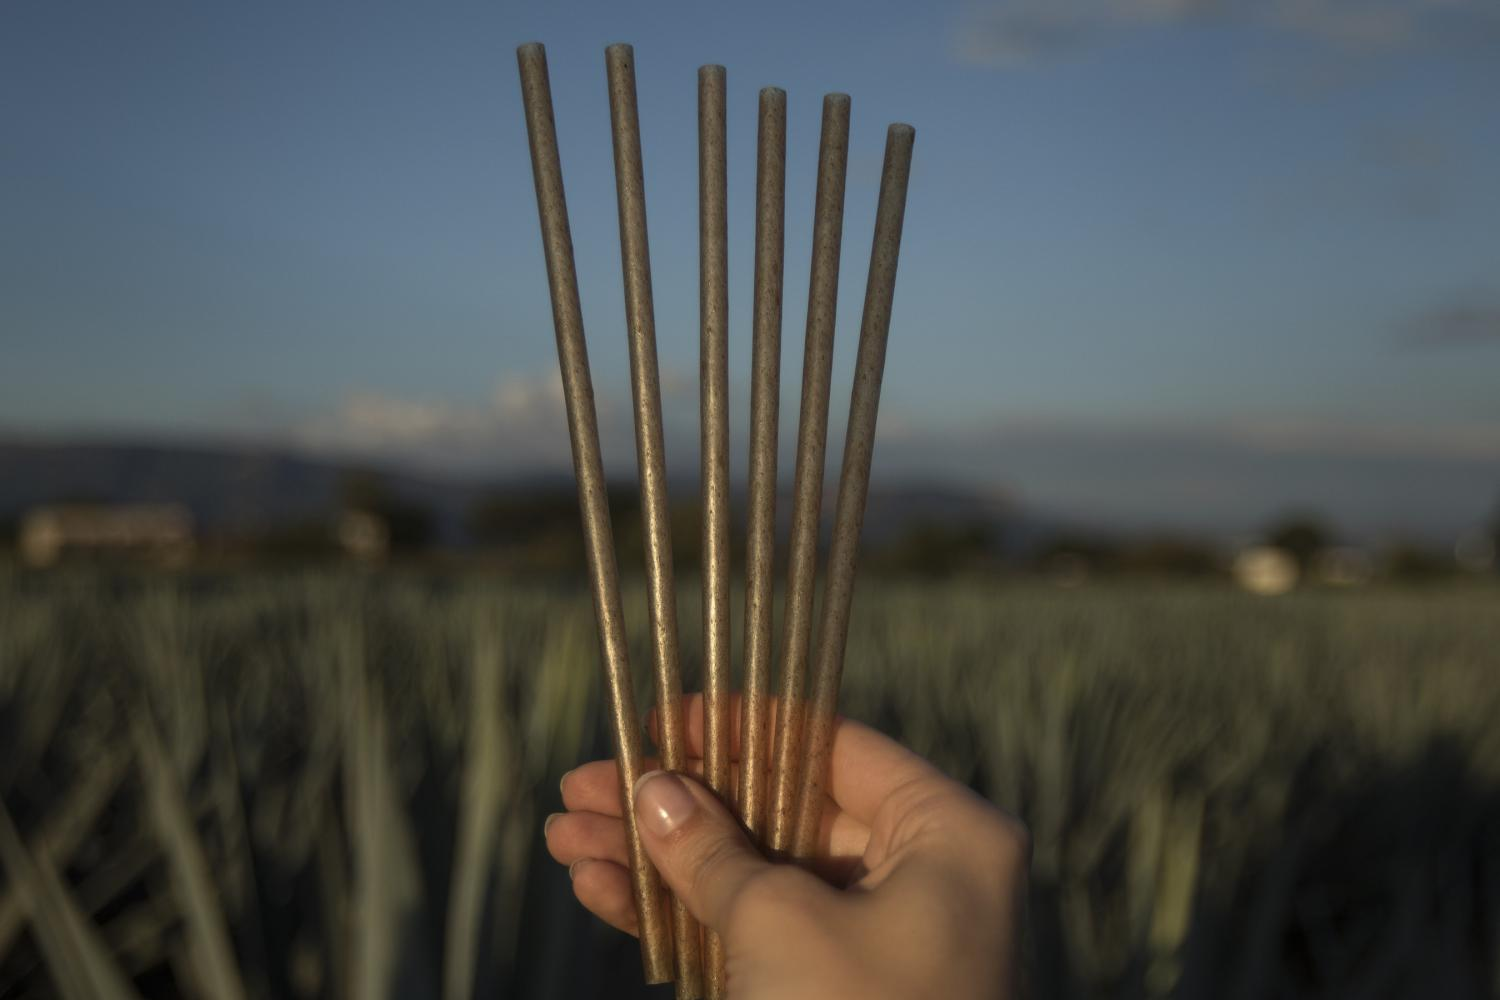 Jose Cuervo to Release Biodegradable Straws Made From Agave Waste photo